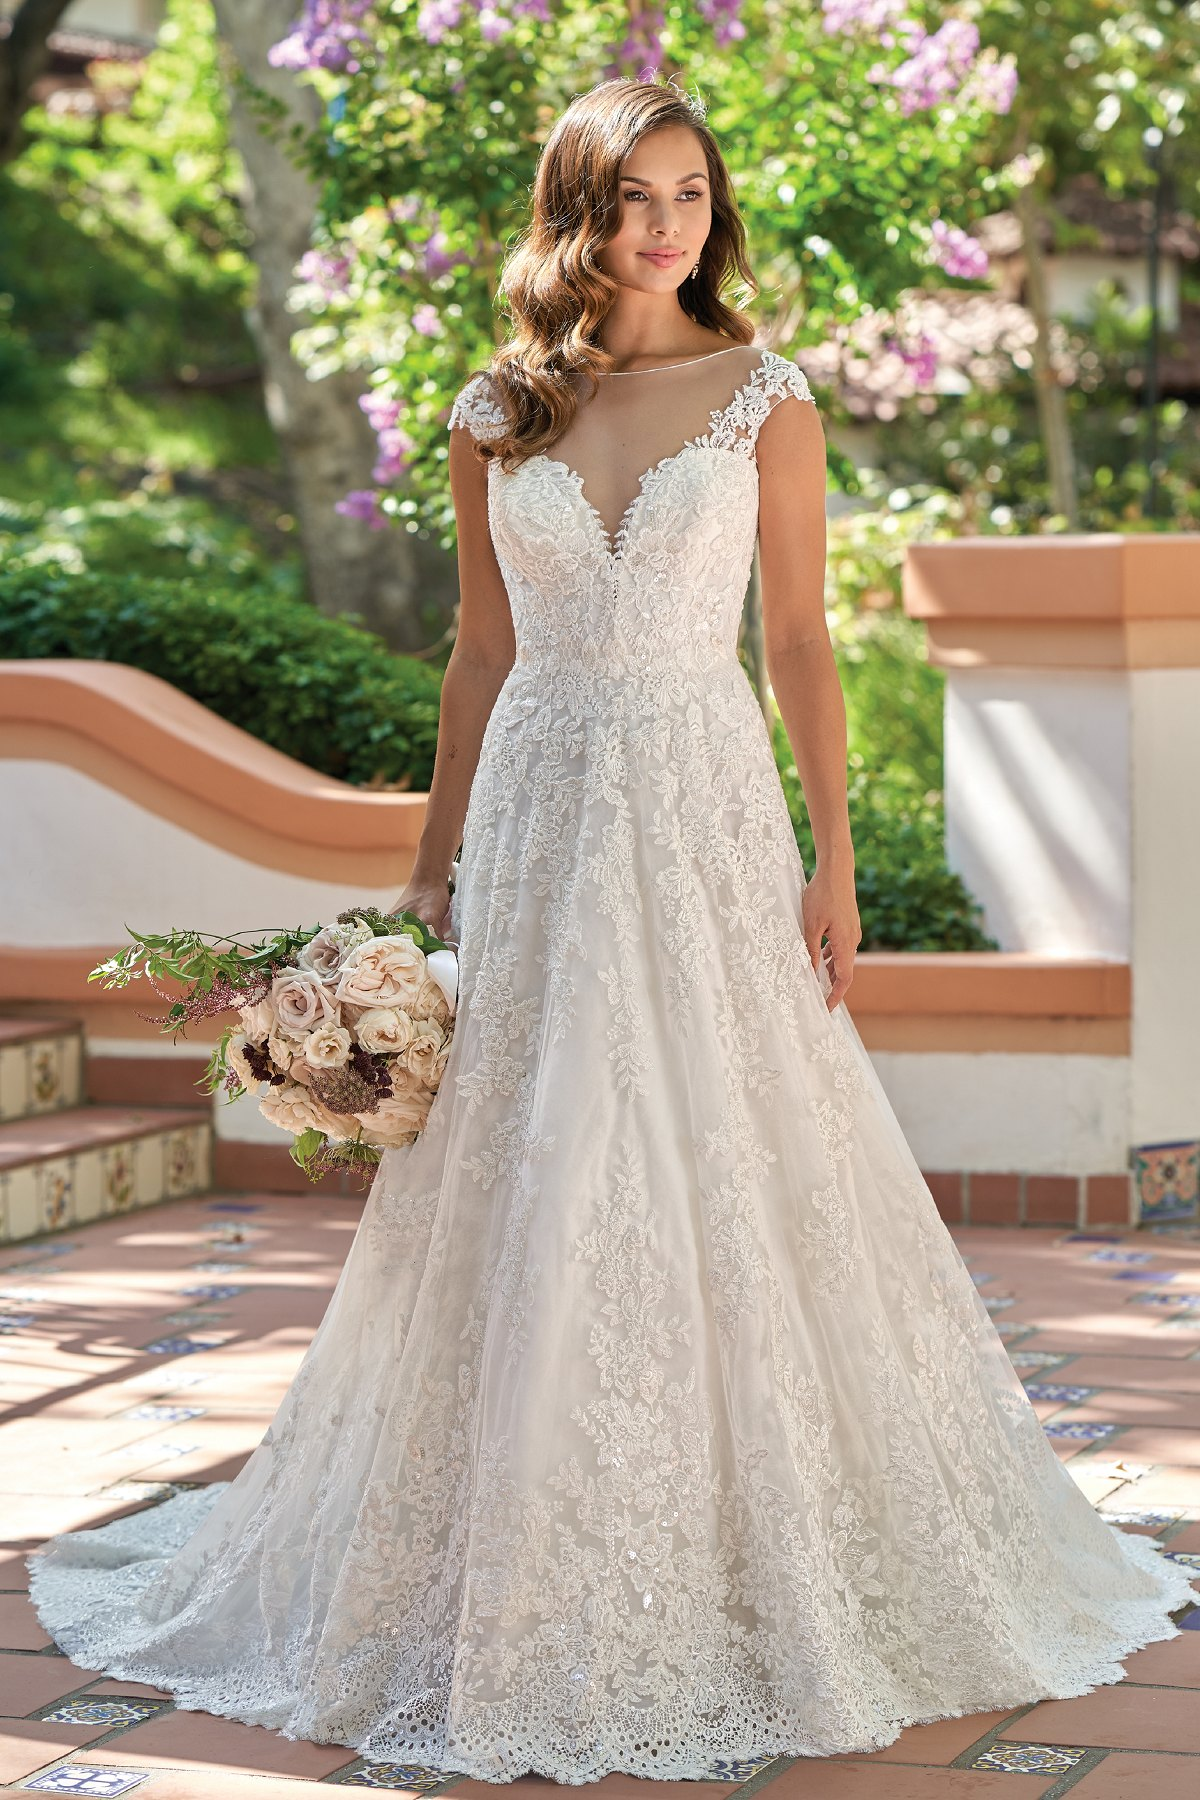 T212014 Vintage Embroidered Lace Wedding Dress With Illusion Neckline